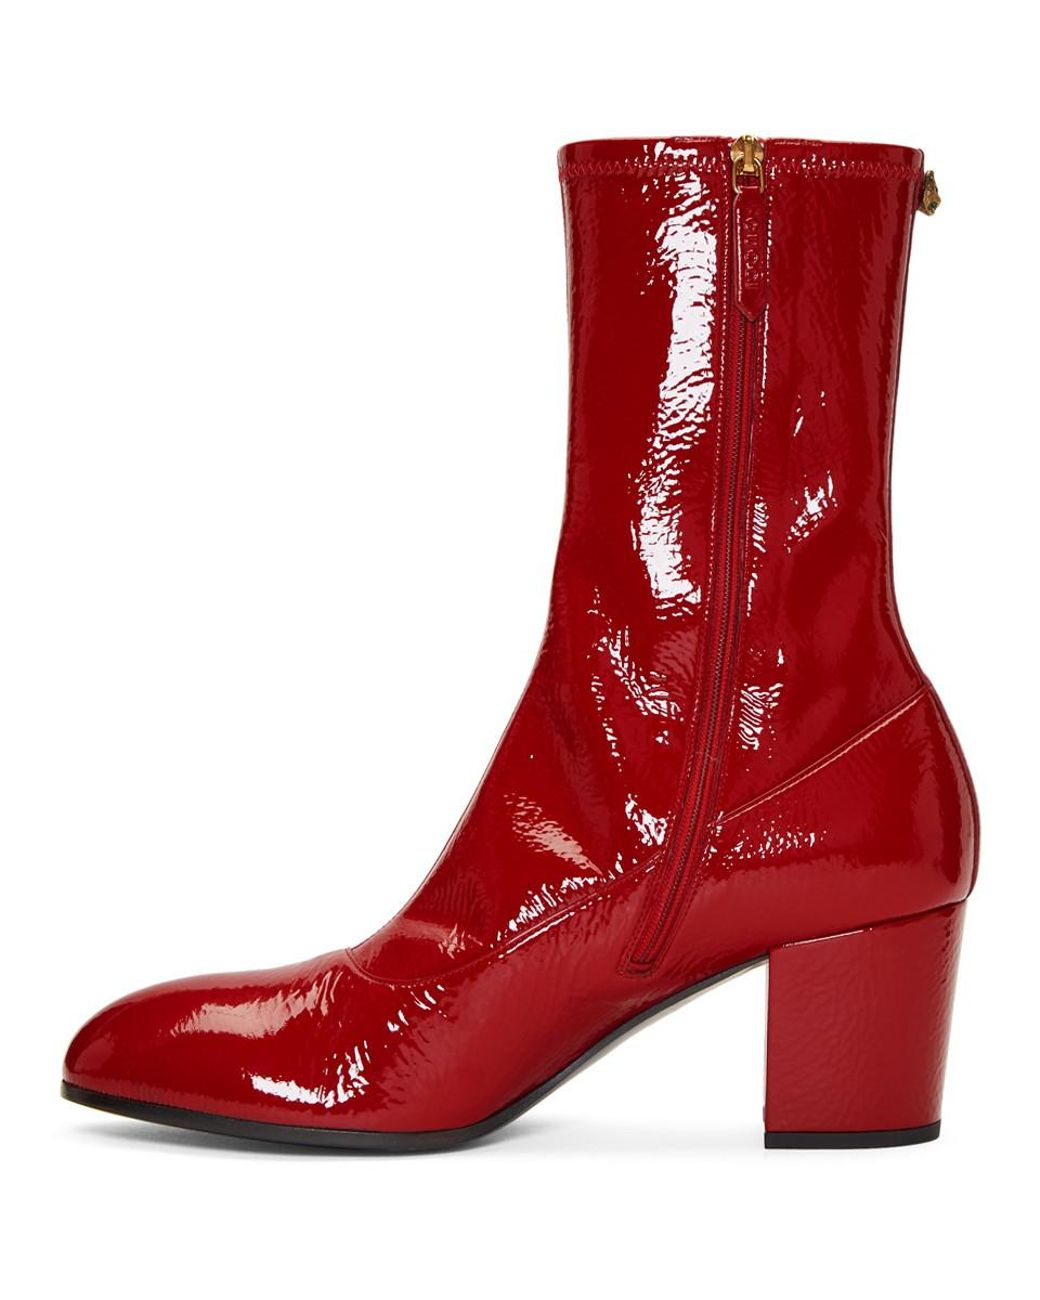 01cb28cb34e Lyst - Gucci Red Patent Printyl Boots in Red for Men - Save 28%